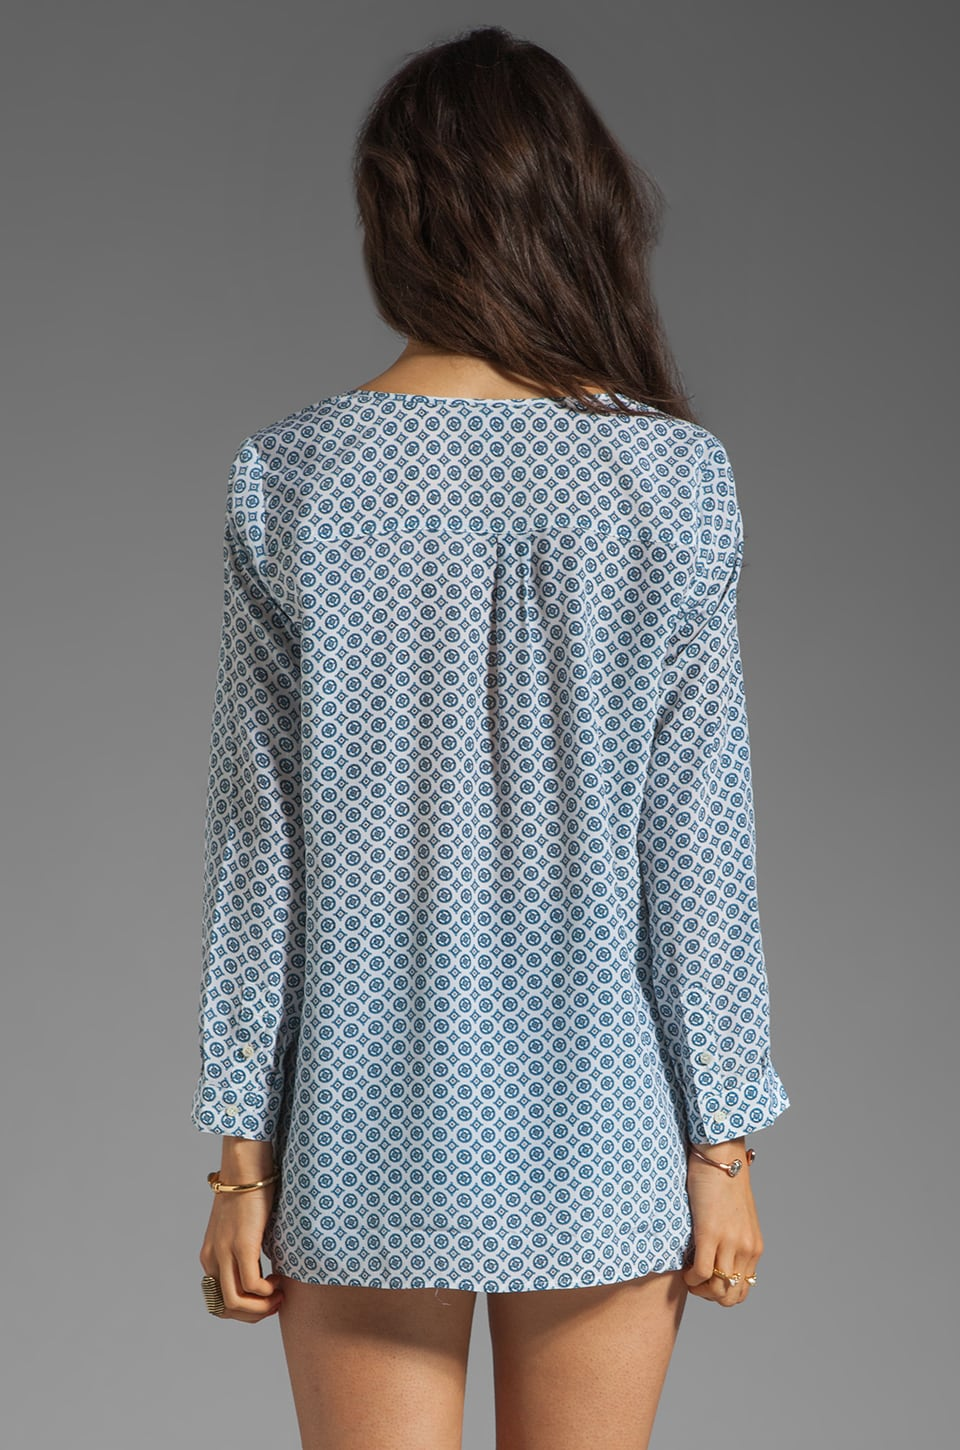 Joie Nepal Medallion Print Blouse in Porcelain